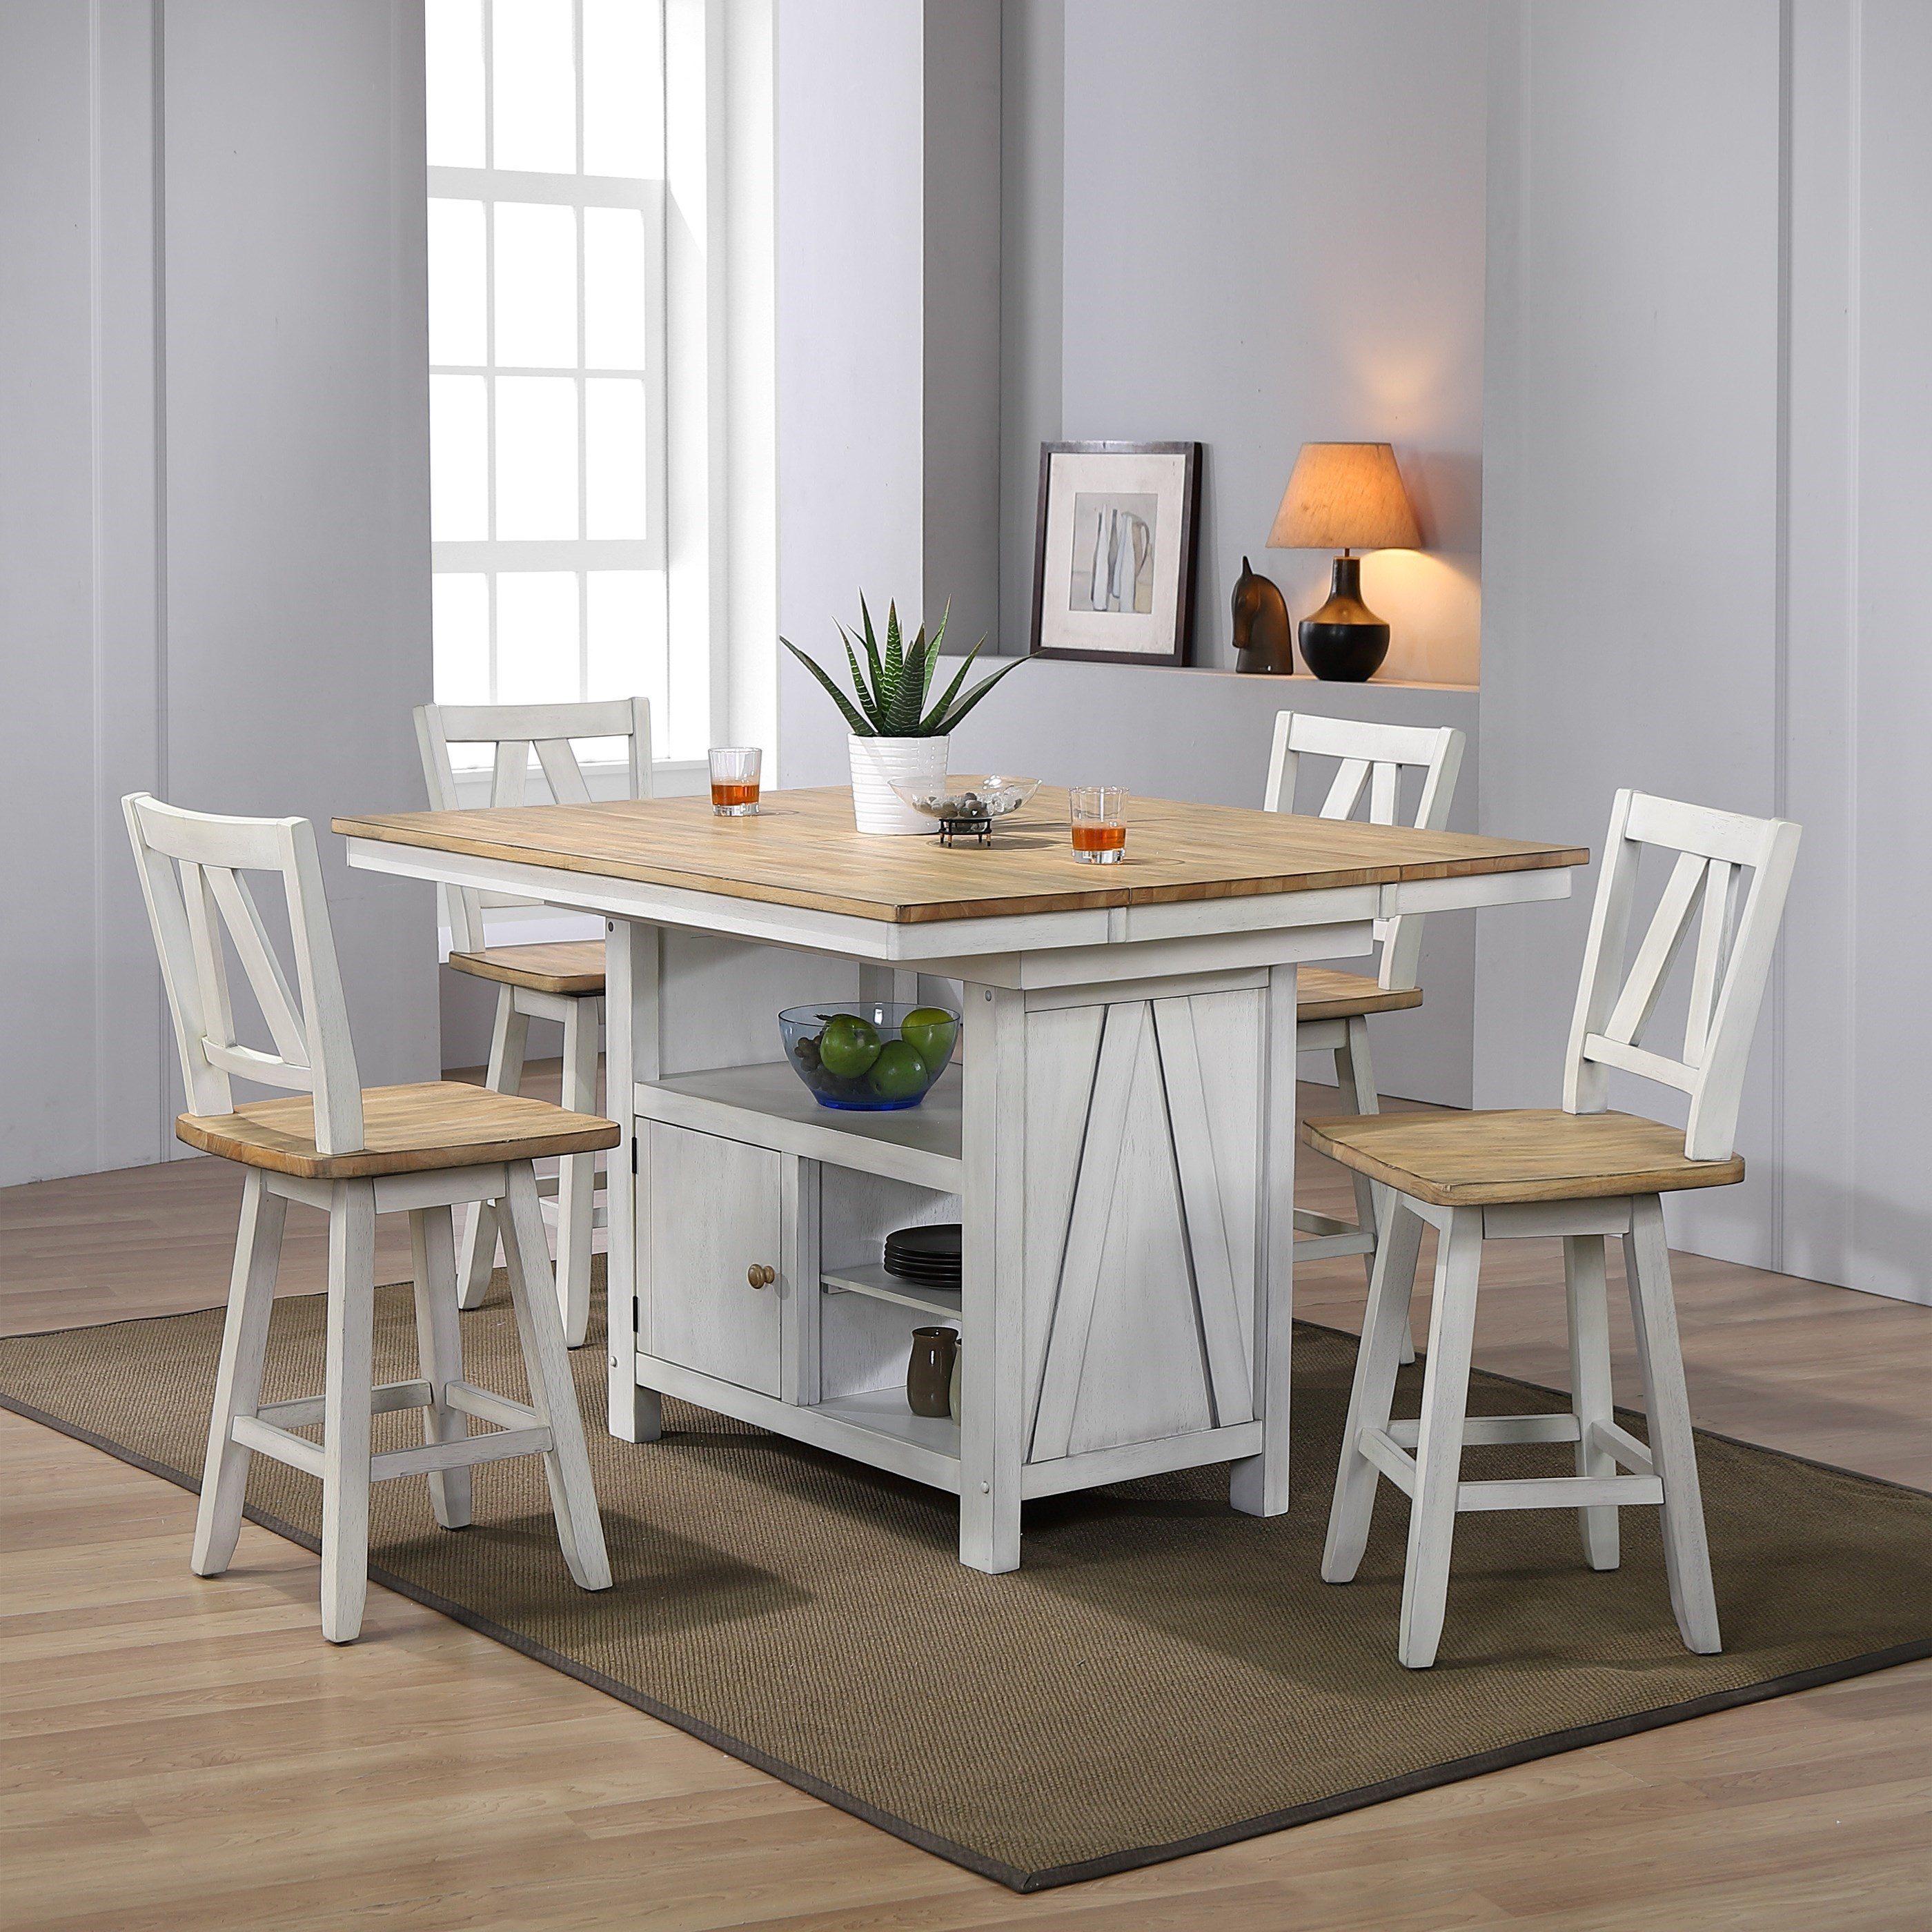 Lindsey Farm 5-Piece Gathering Table Set by Libby at Walker's Furniture